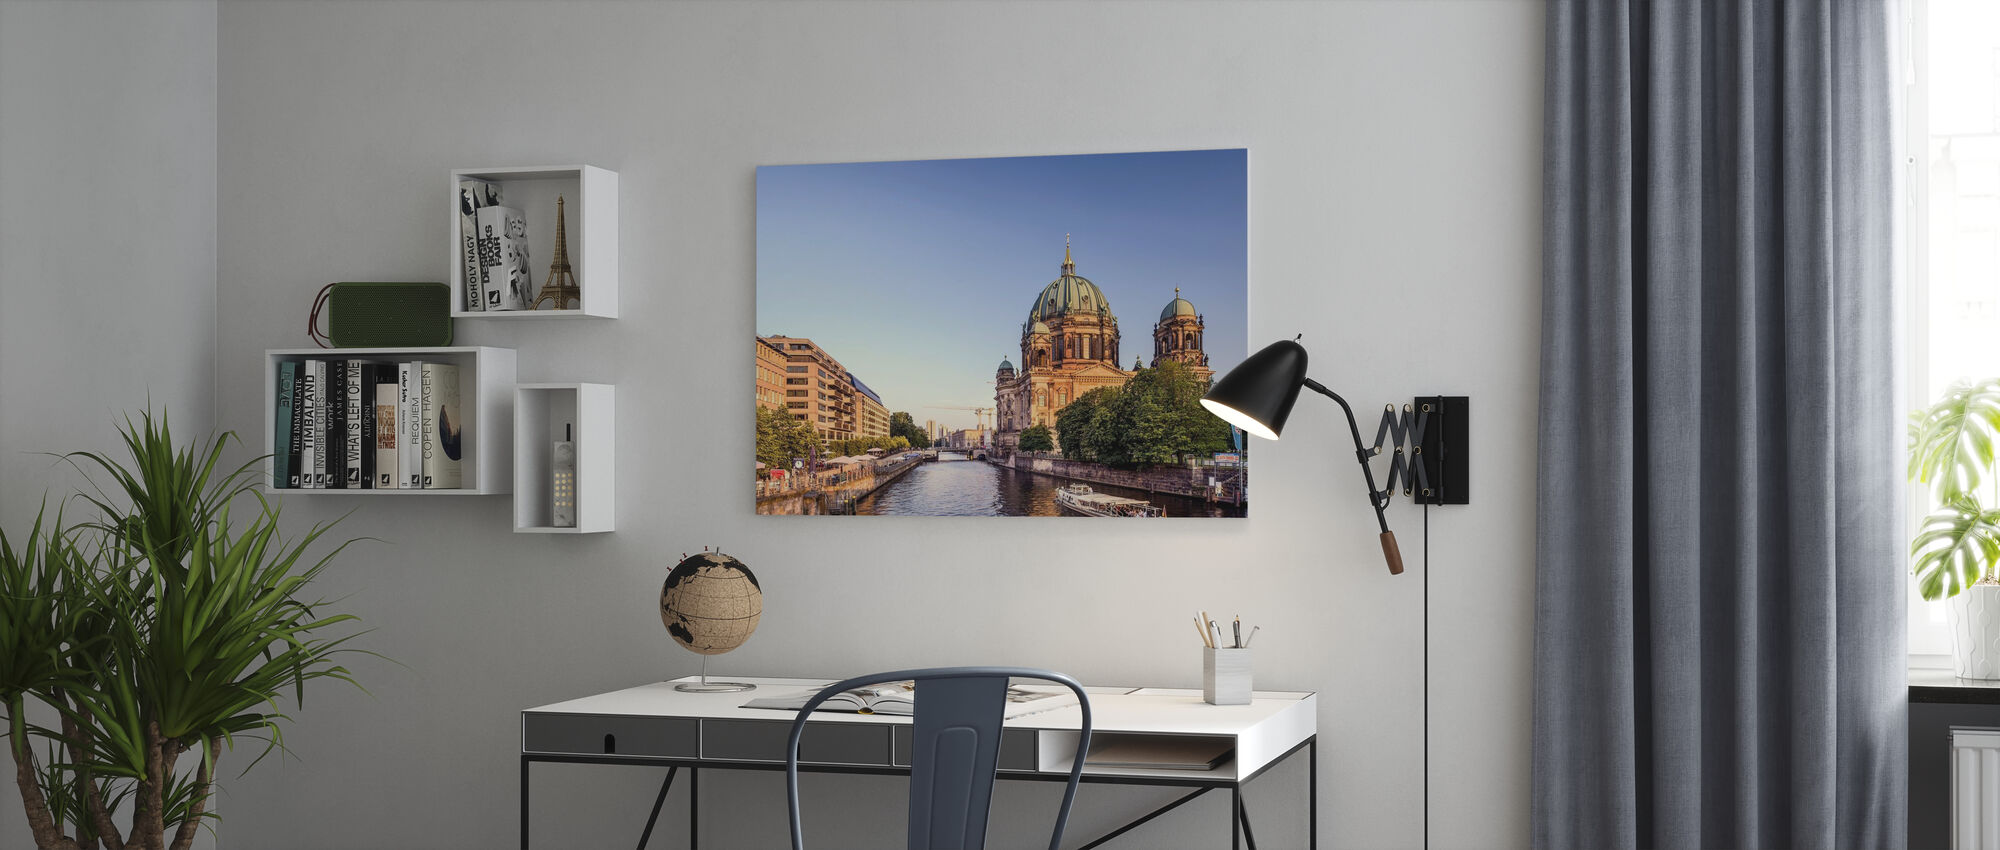 Berliner Dom - Canvas print - Office